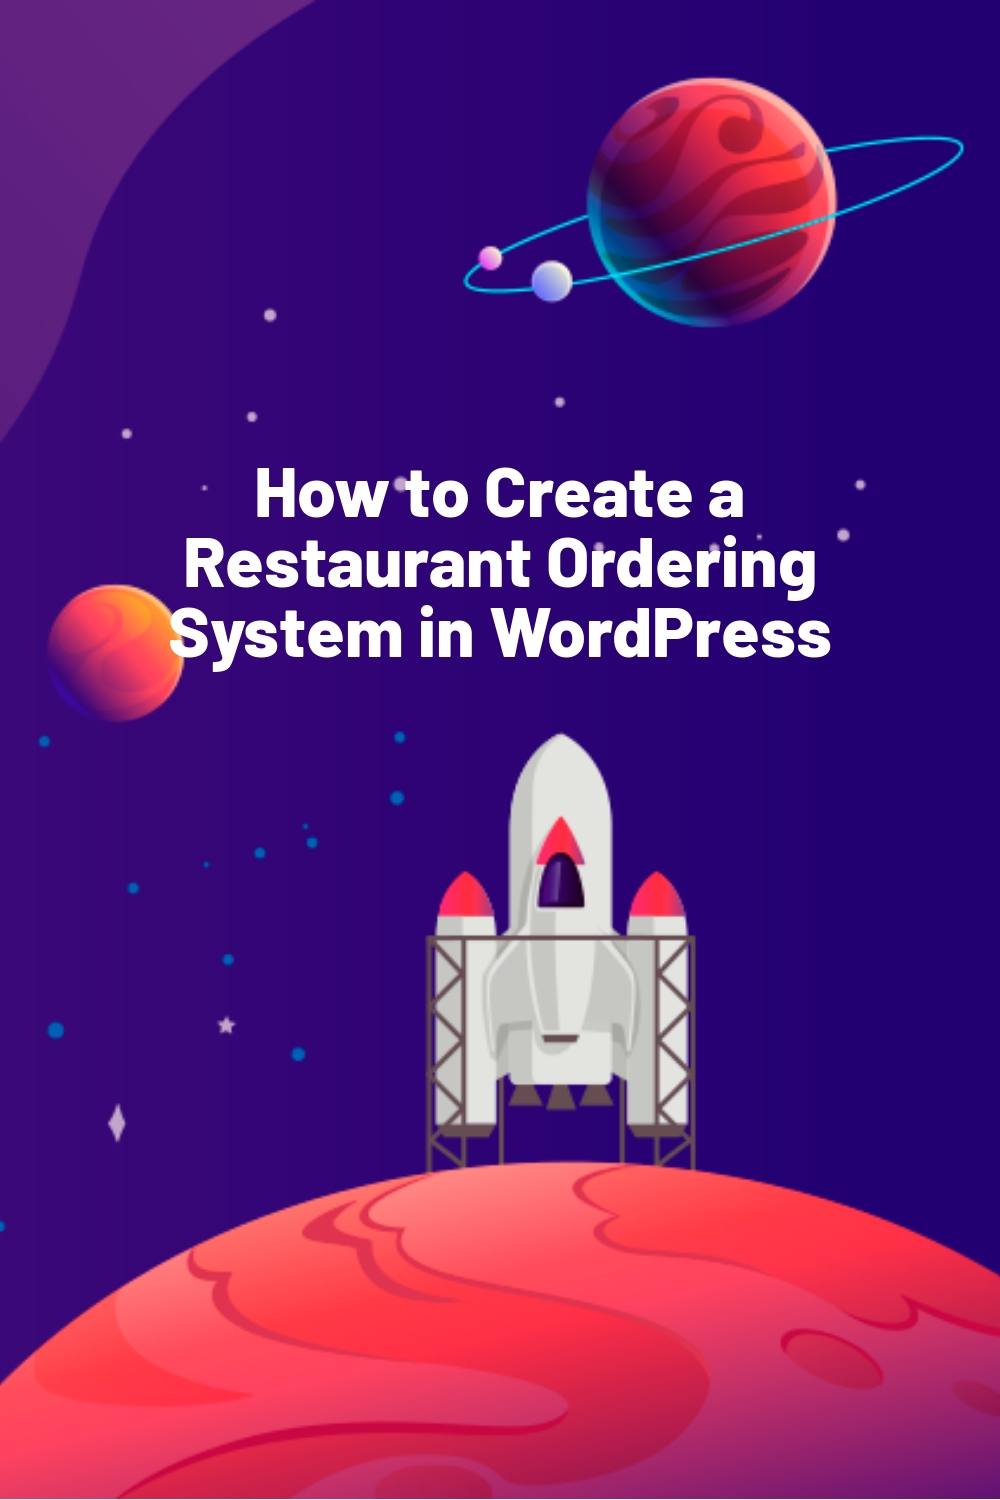 How to Create a Restaurant Ordering System in WordPress